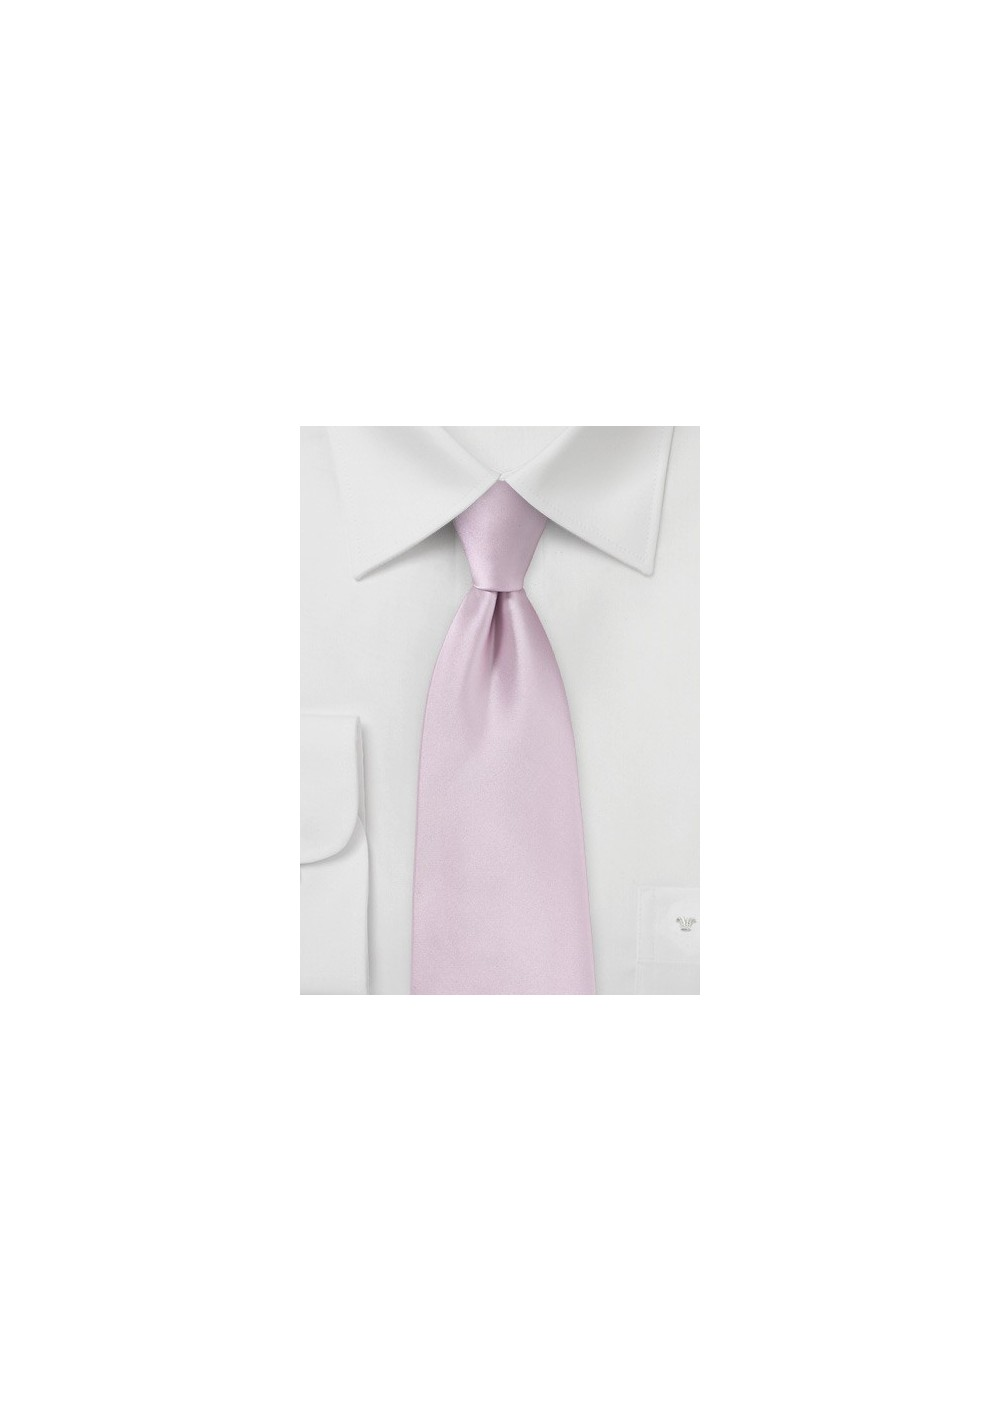 Soft Lilac Pink Tie in XL Length